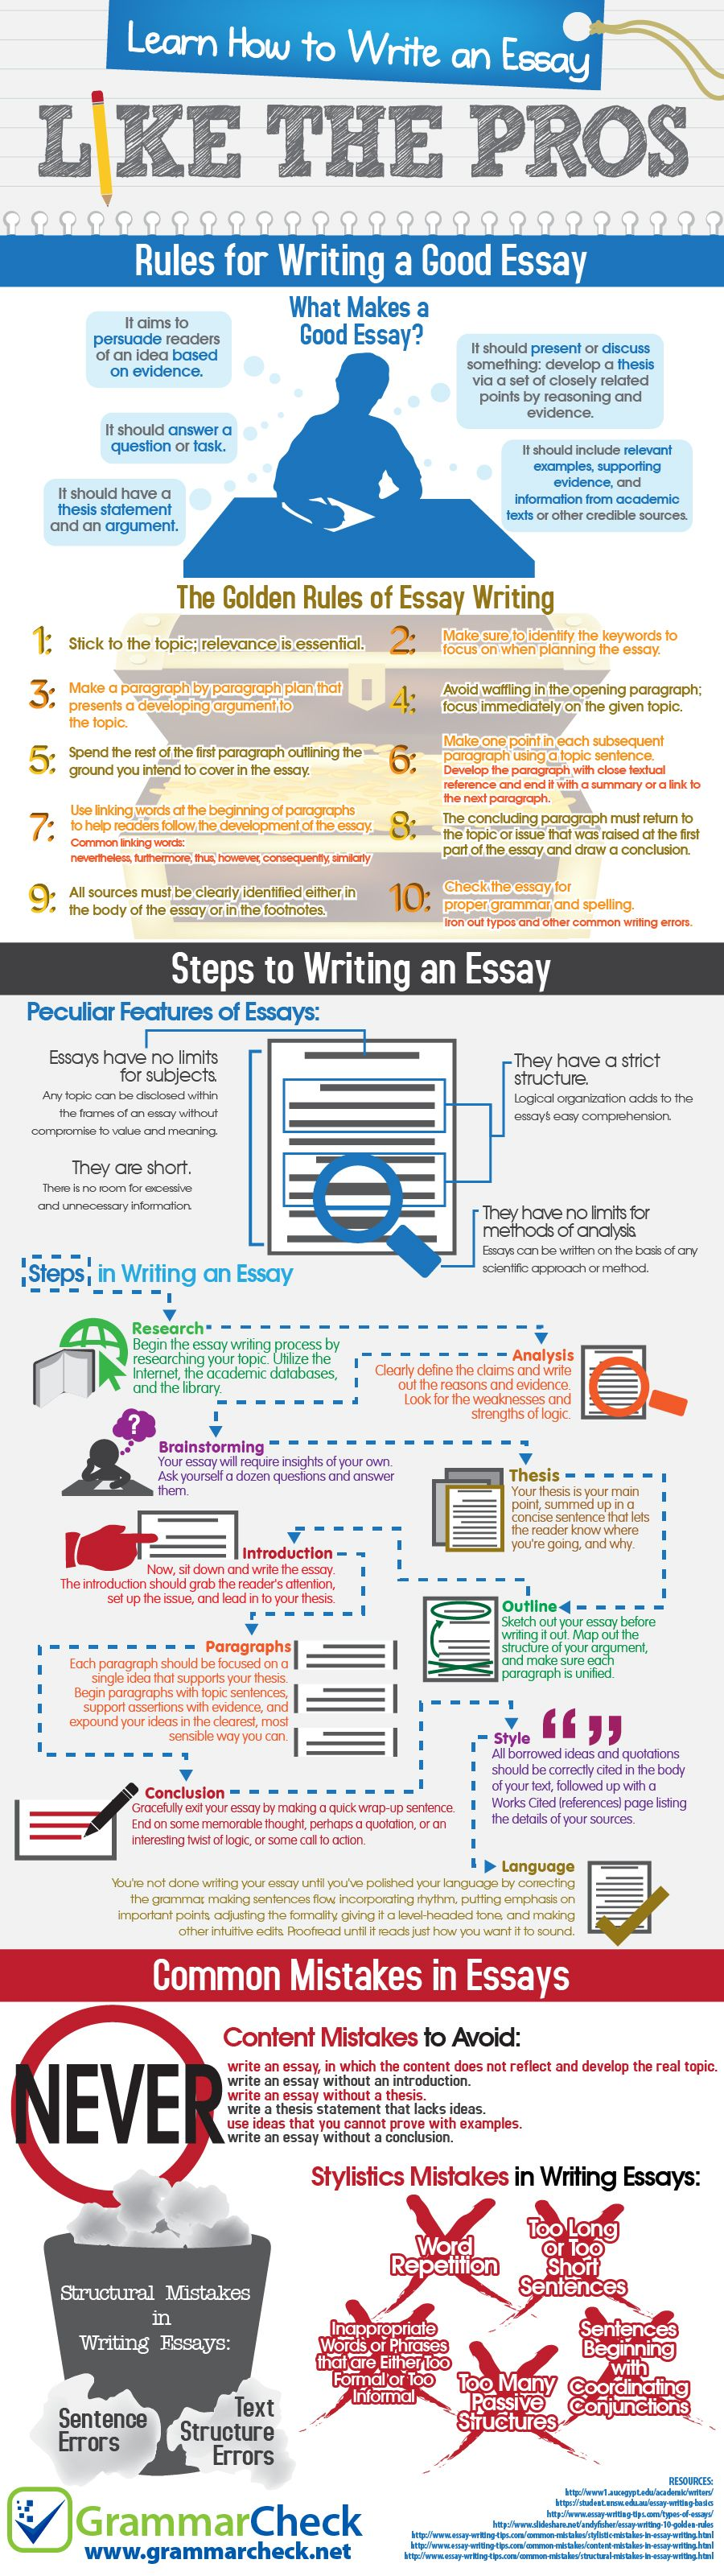 018 Write An Essay For Me Surprising Meaning In Gujarati Free My Online Full